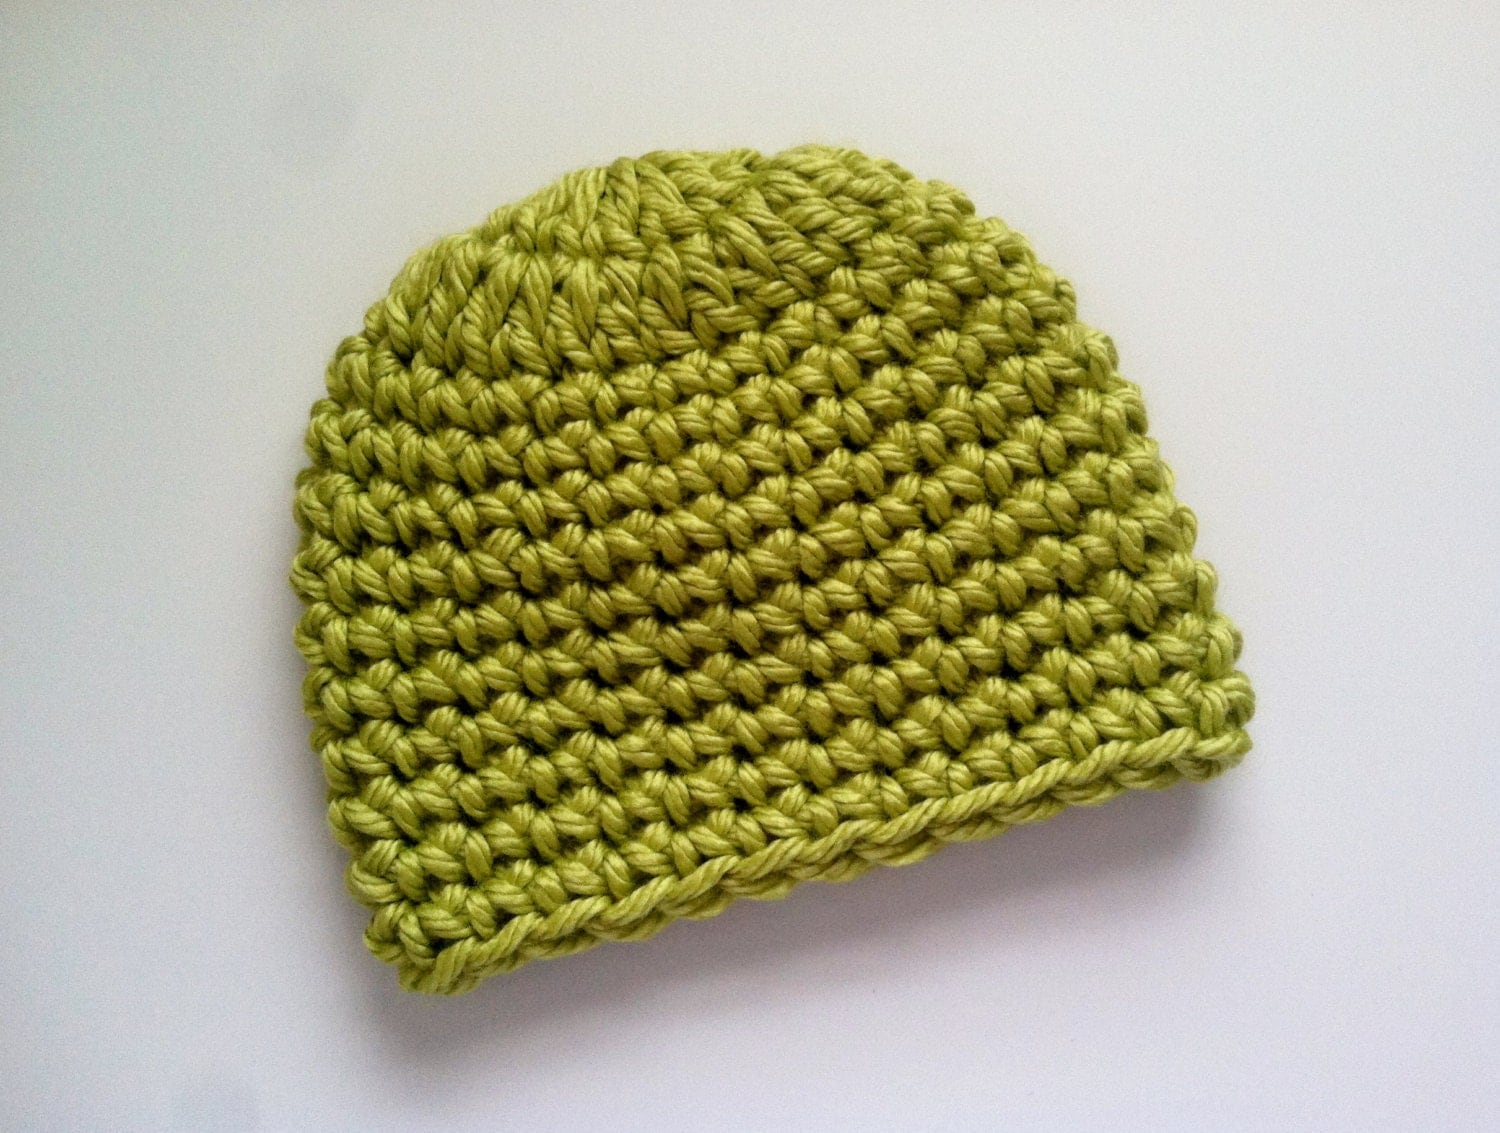 Crochet Hat Pattern Super Bulky Yarn : Crocheted Lime Green Super Bulky Hat Chunky Beanies Unisex